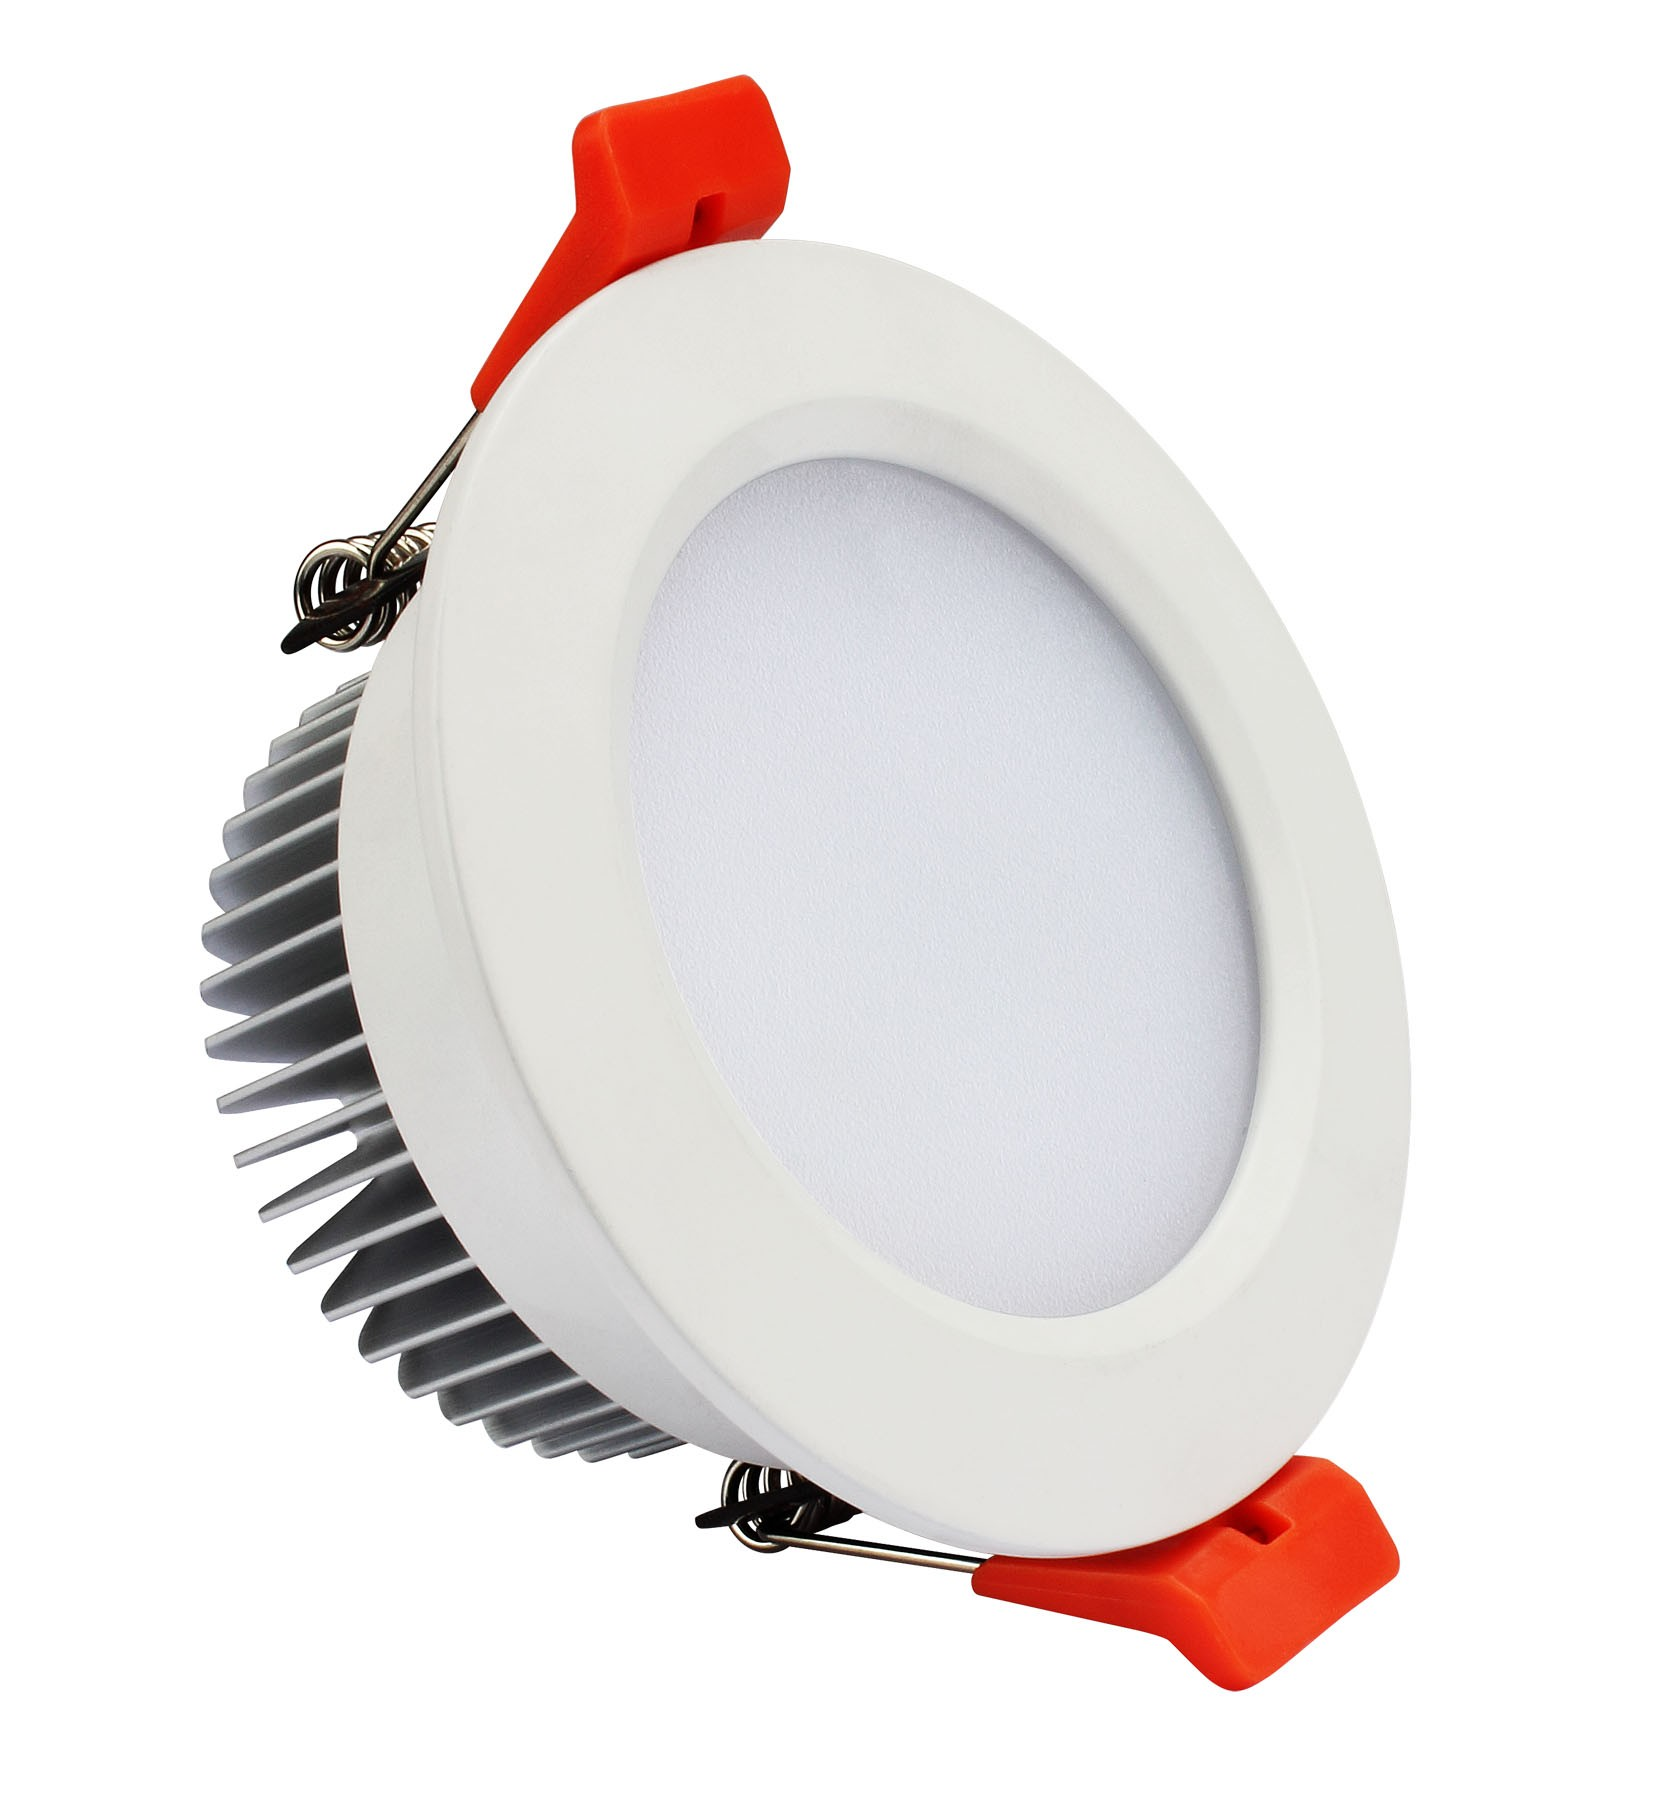 New Recessed LED Down Light LL0401